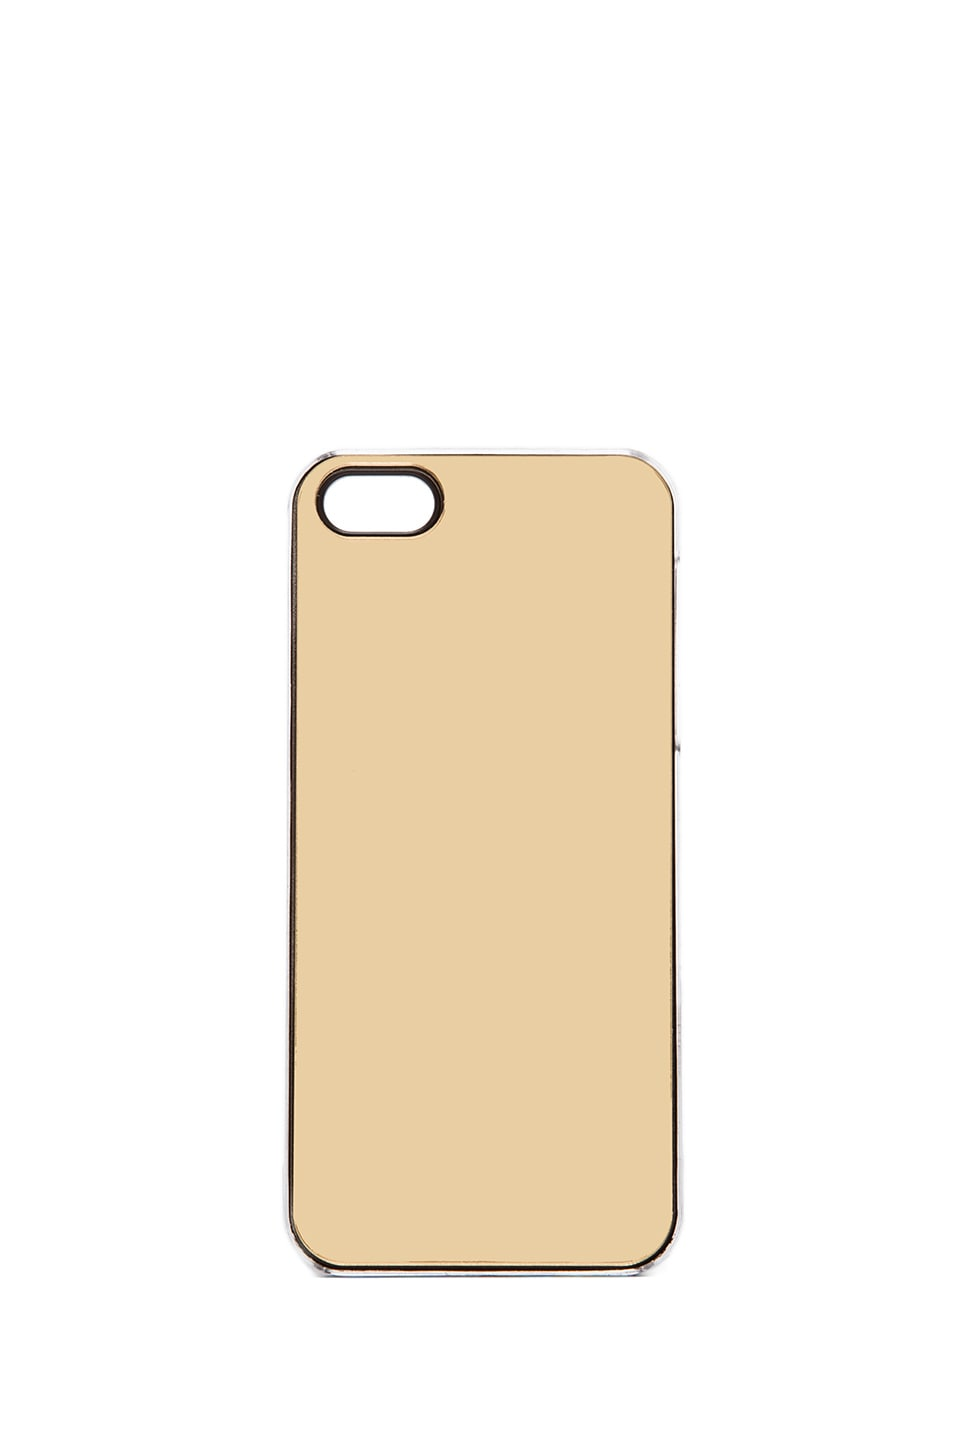 ZERO GRAVITY Mirror iPhone 5 Case in Gold